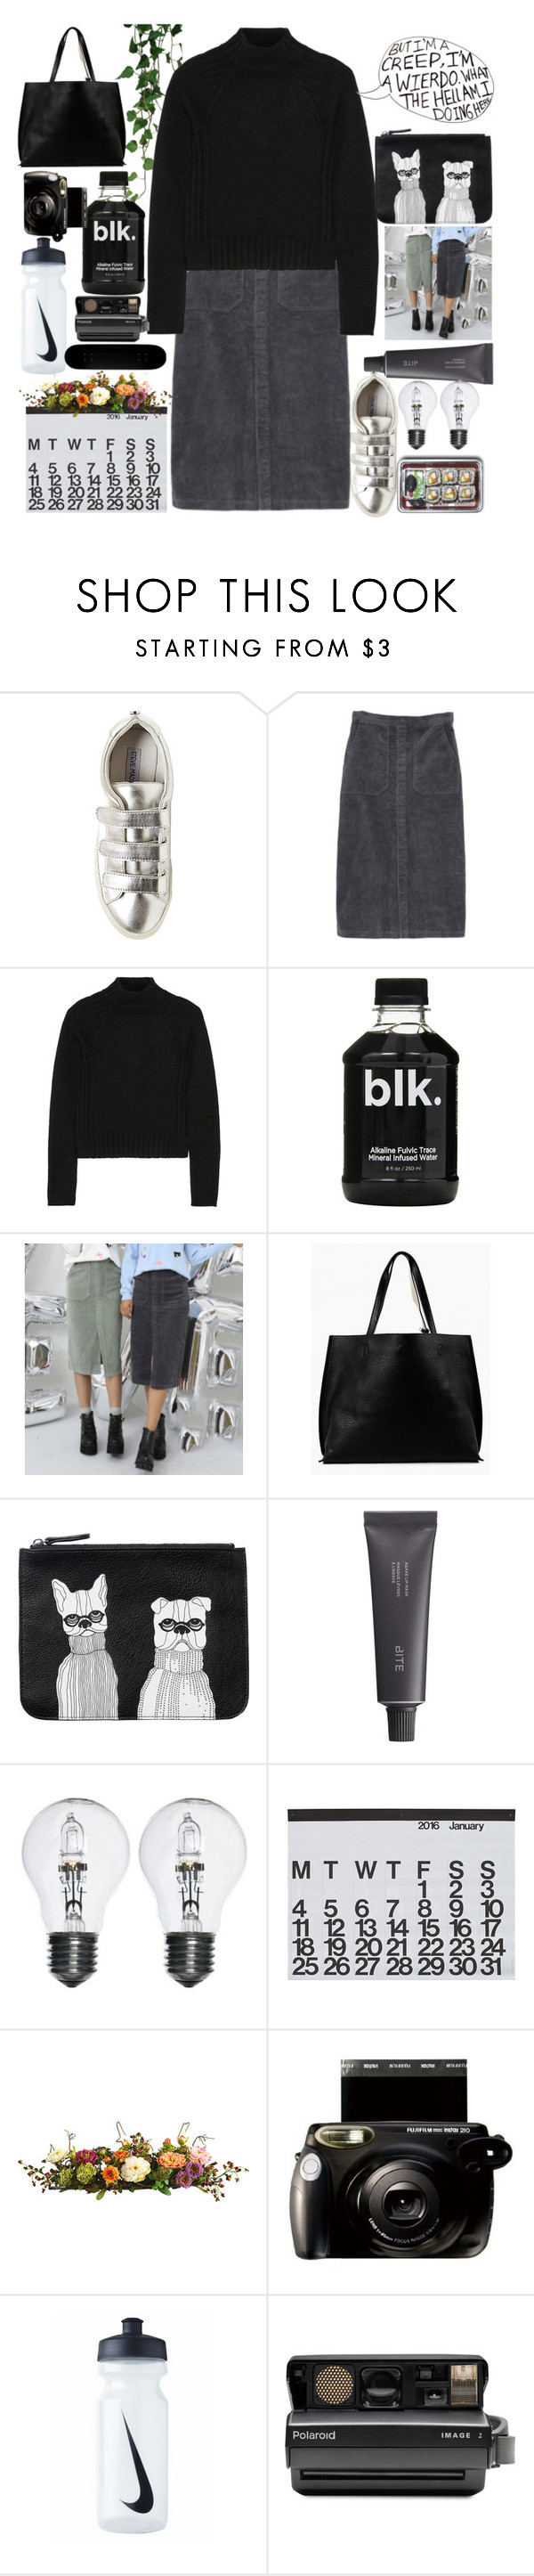 """If that's not love that what is, If that's not friendship then what is "" by melaningaloree ❤ liked on Polyvore featuring Steve Madden, Autumn Cashmere, Azalea, Monki, Bite, Pieces, Crate and Barrel, Nearly Natural, NIKE and Polaroid"